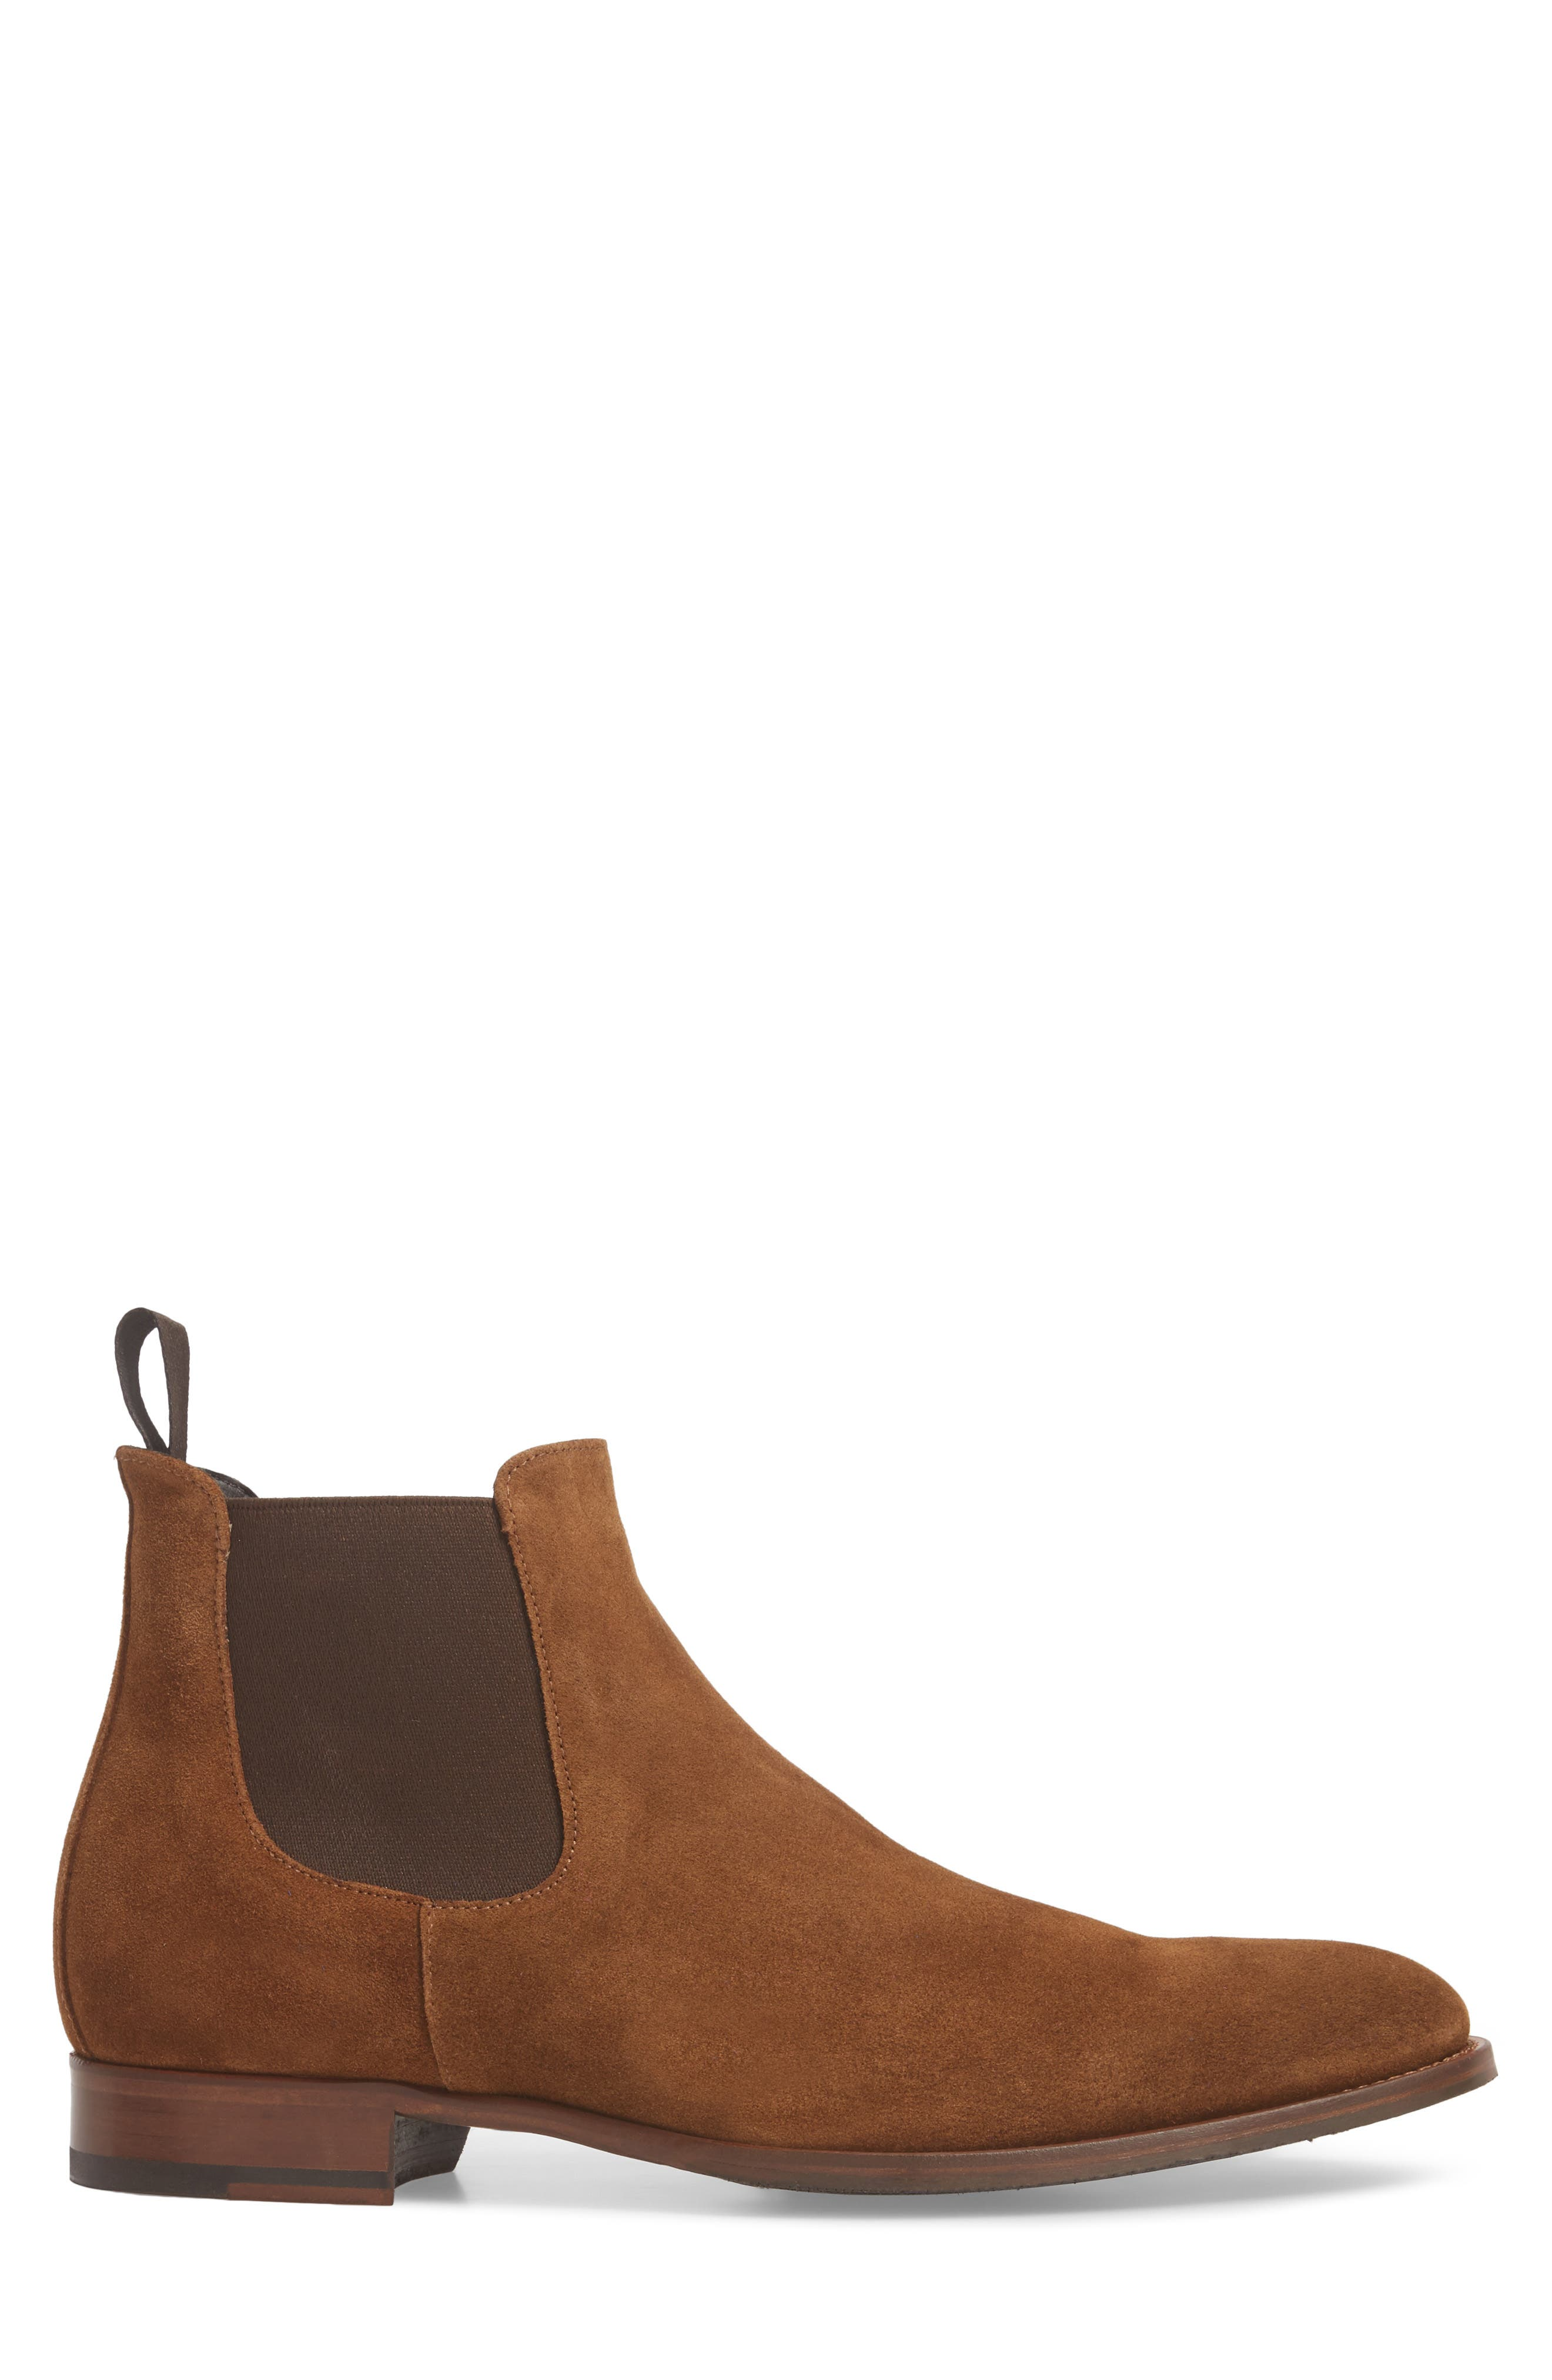 Shelby Mid Chelsea Boot,                             Alternate thumbnail 3, color,                             BROWN LEATHER